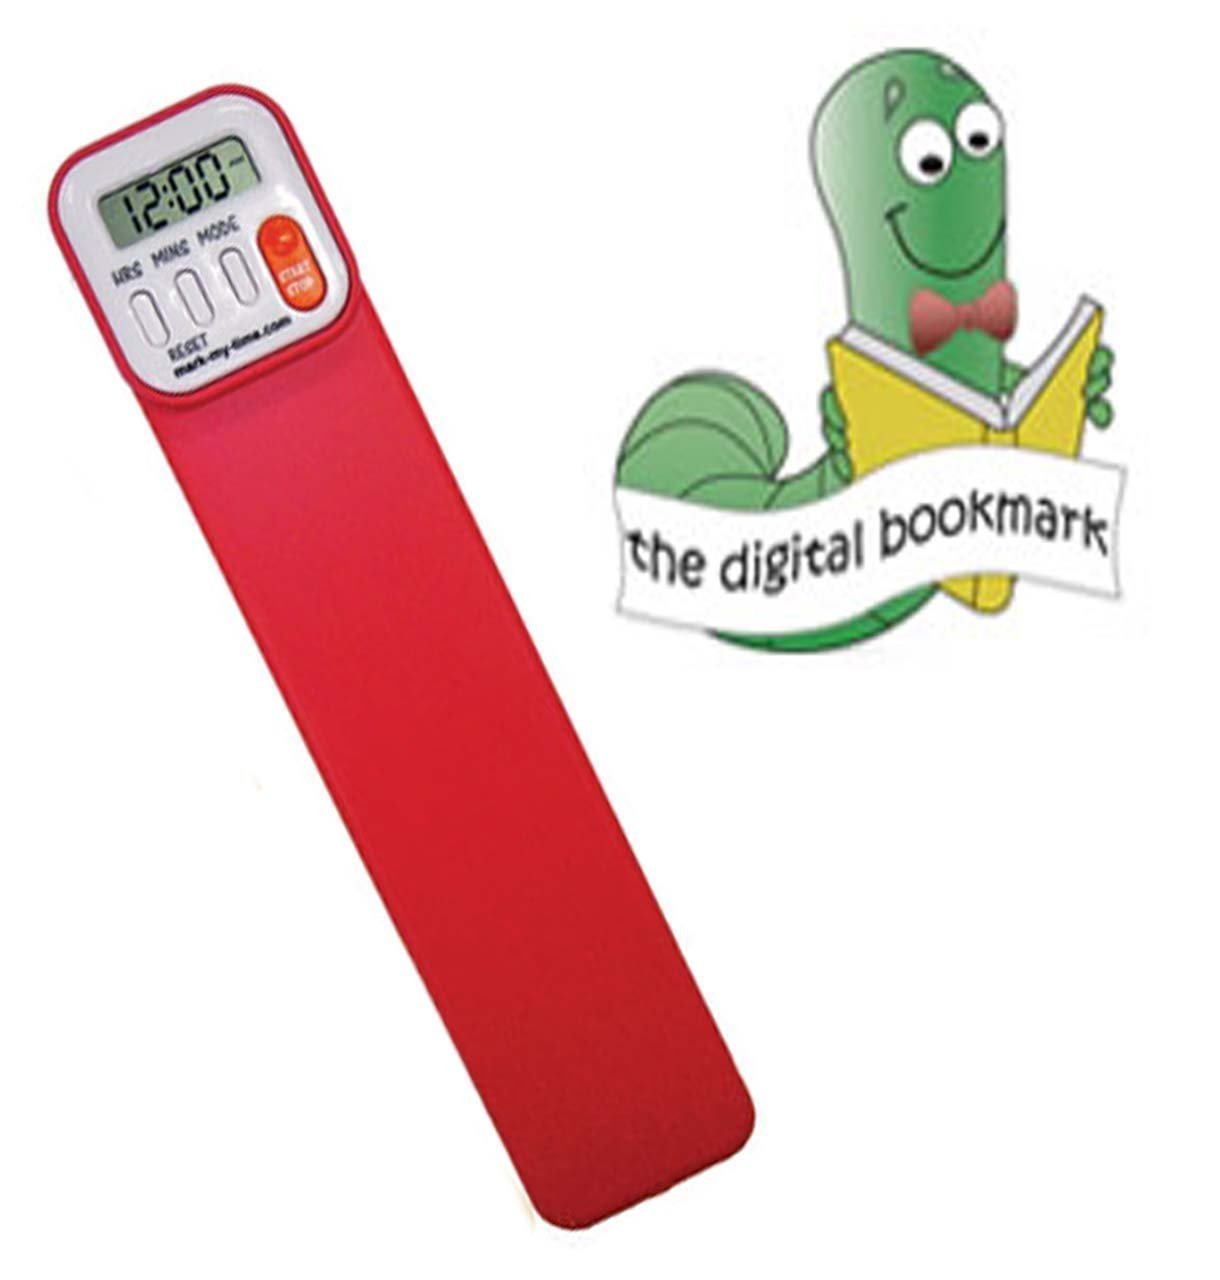 RTG 7000095 MMT BOOKMARK BRIGHT RED